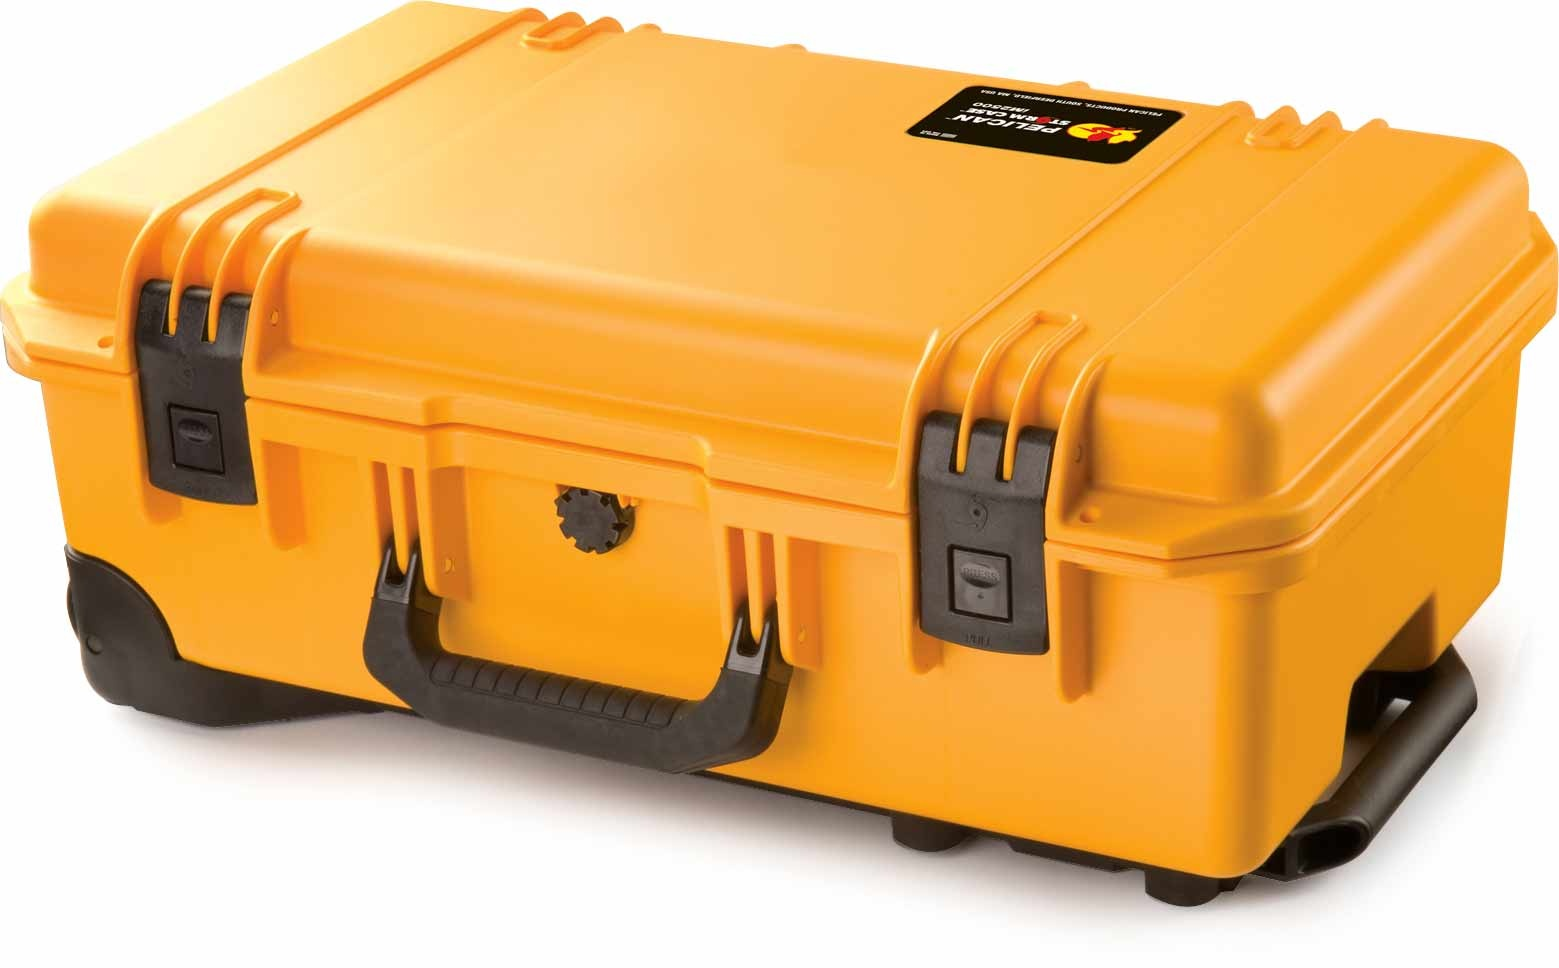 Pelican iM2500 Storm Case without Foam (Yellow)